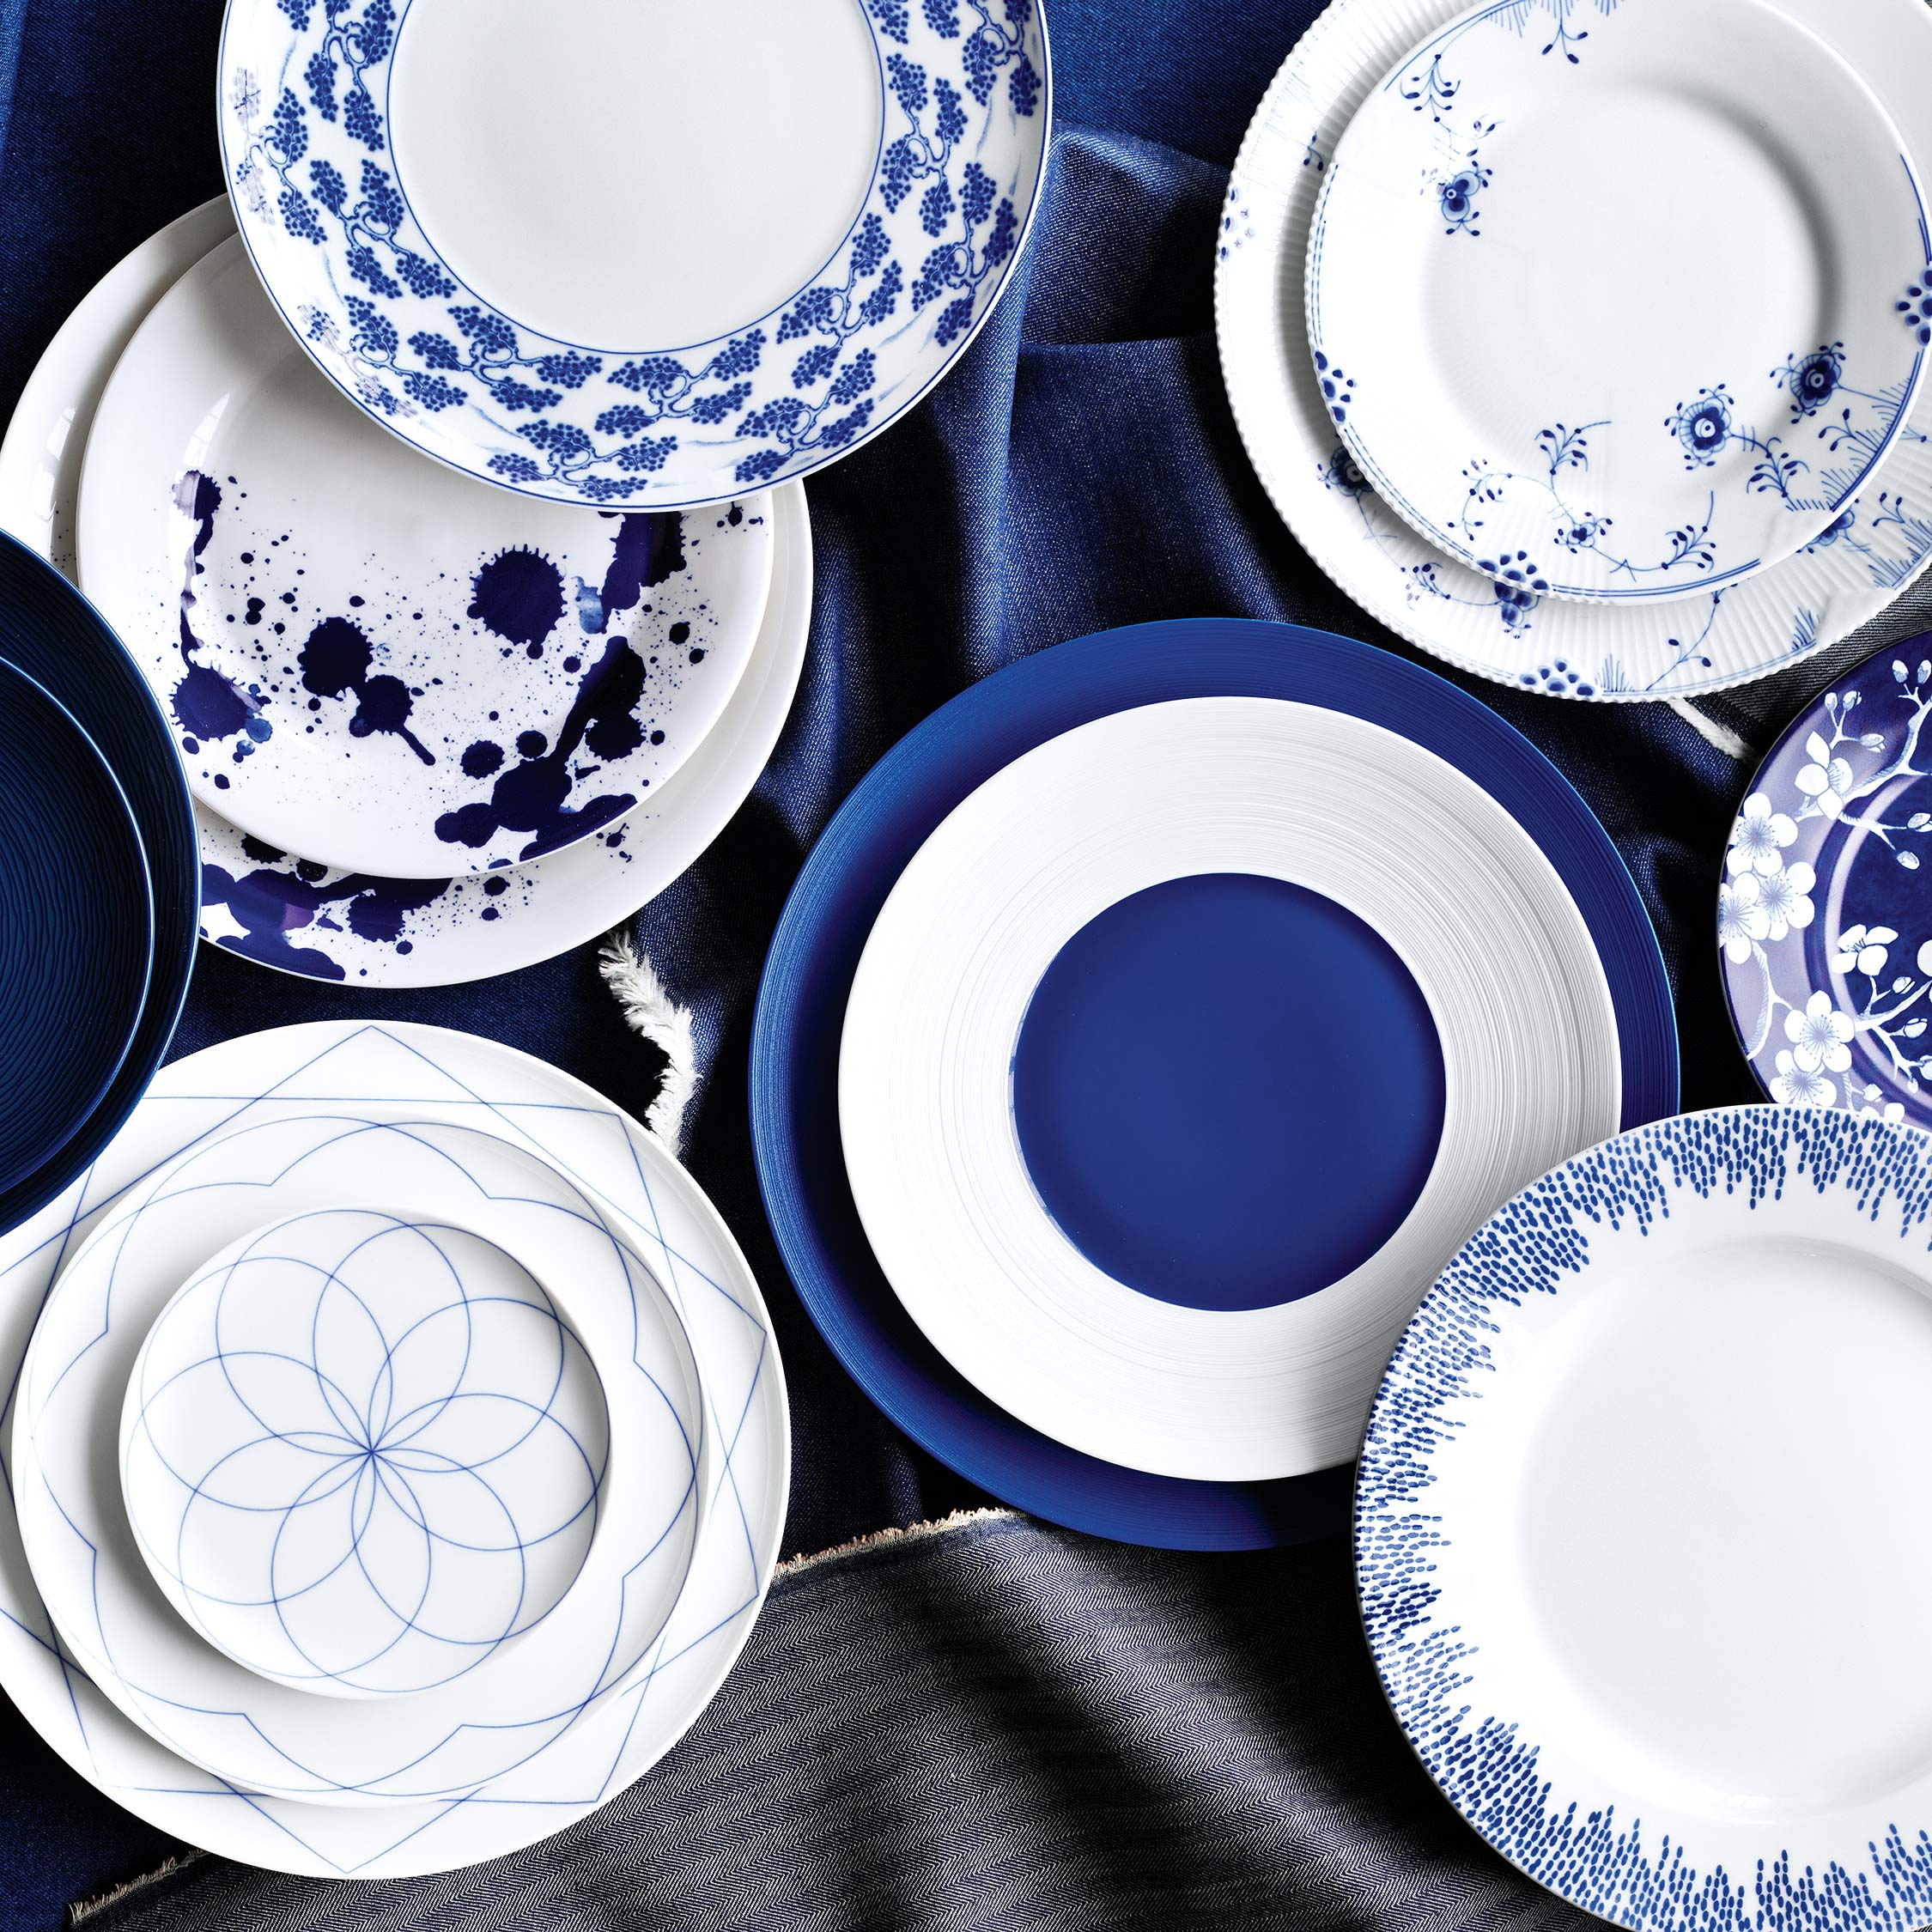 assortment of indigo pattern plates